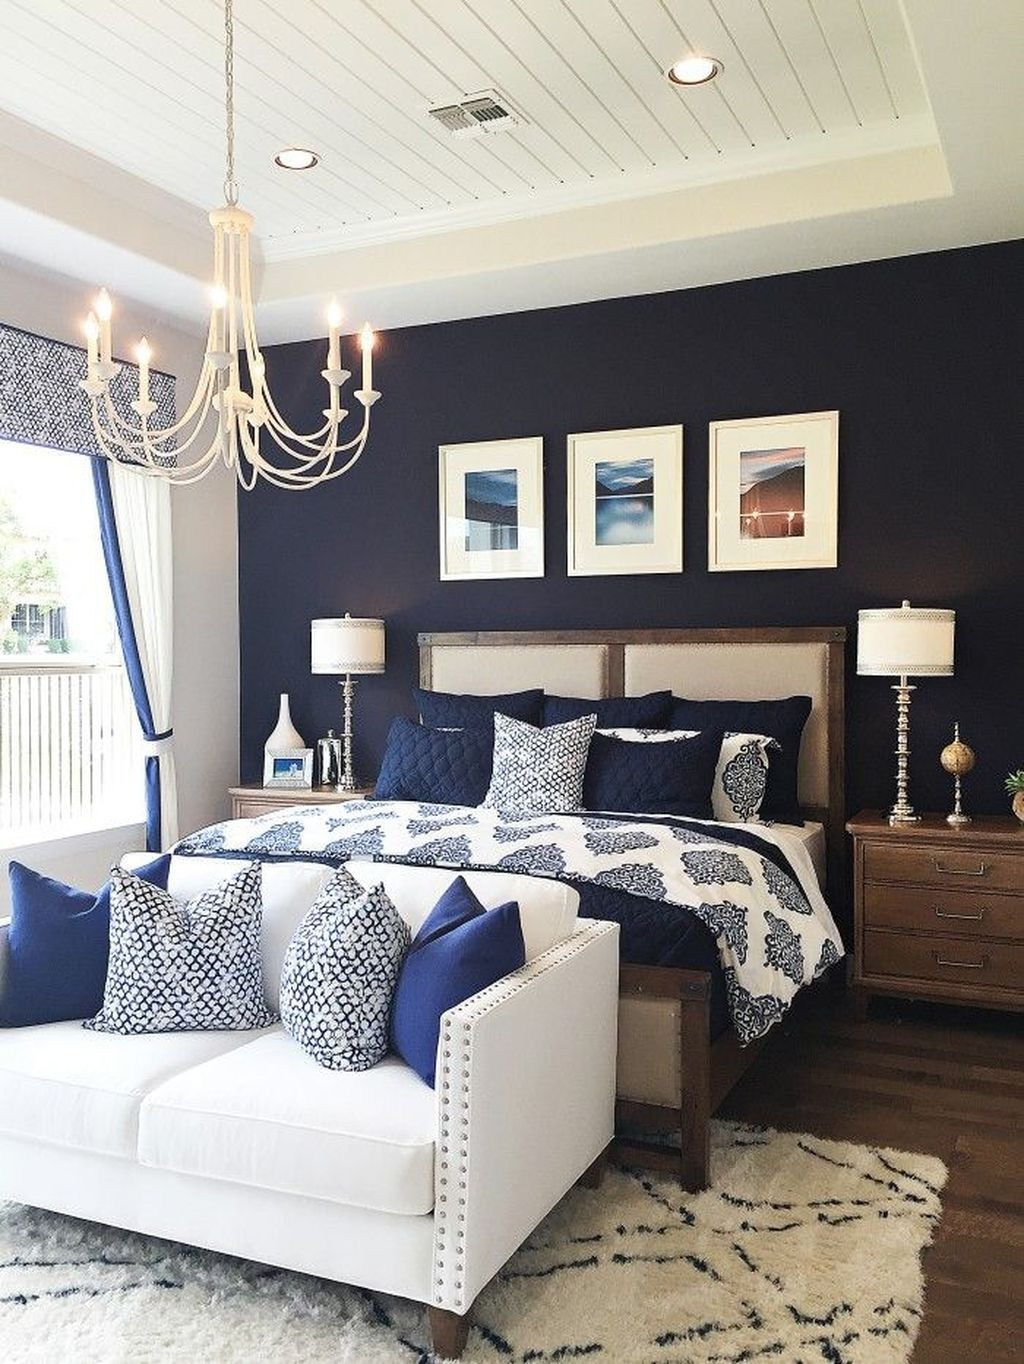 Blue Bedroom Furniture: 30+ Newest Master Bedroom Ideas For Wonderful Home